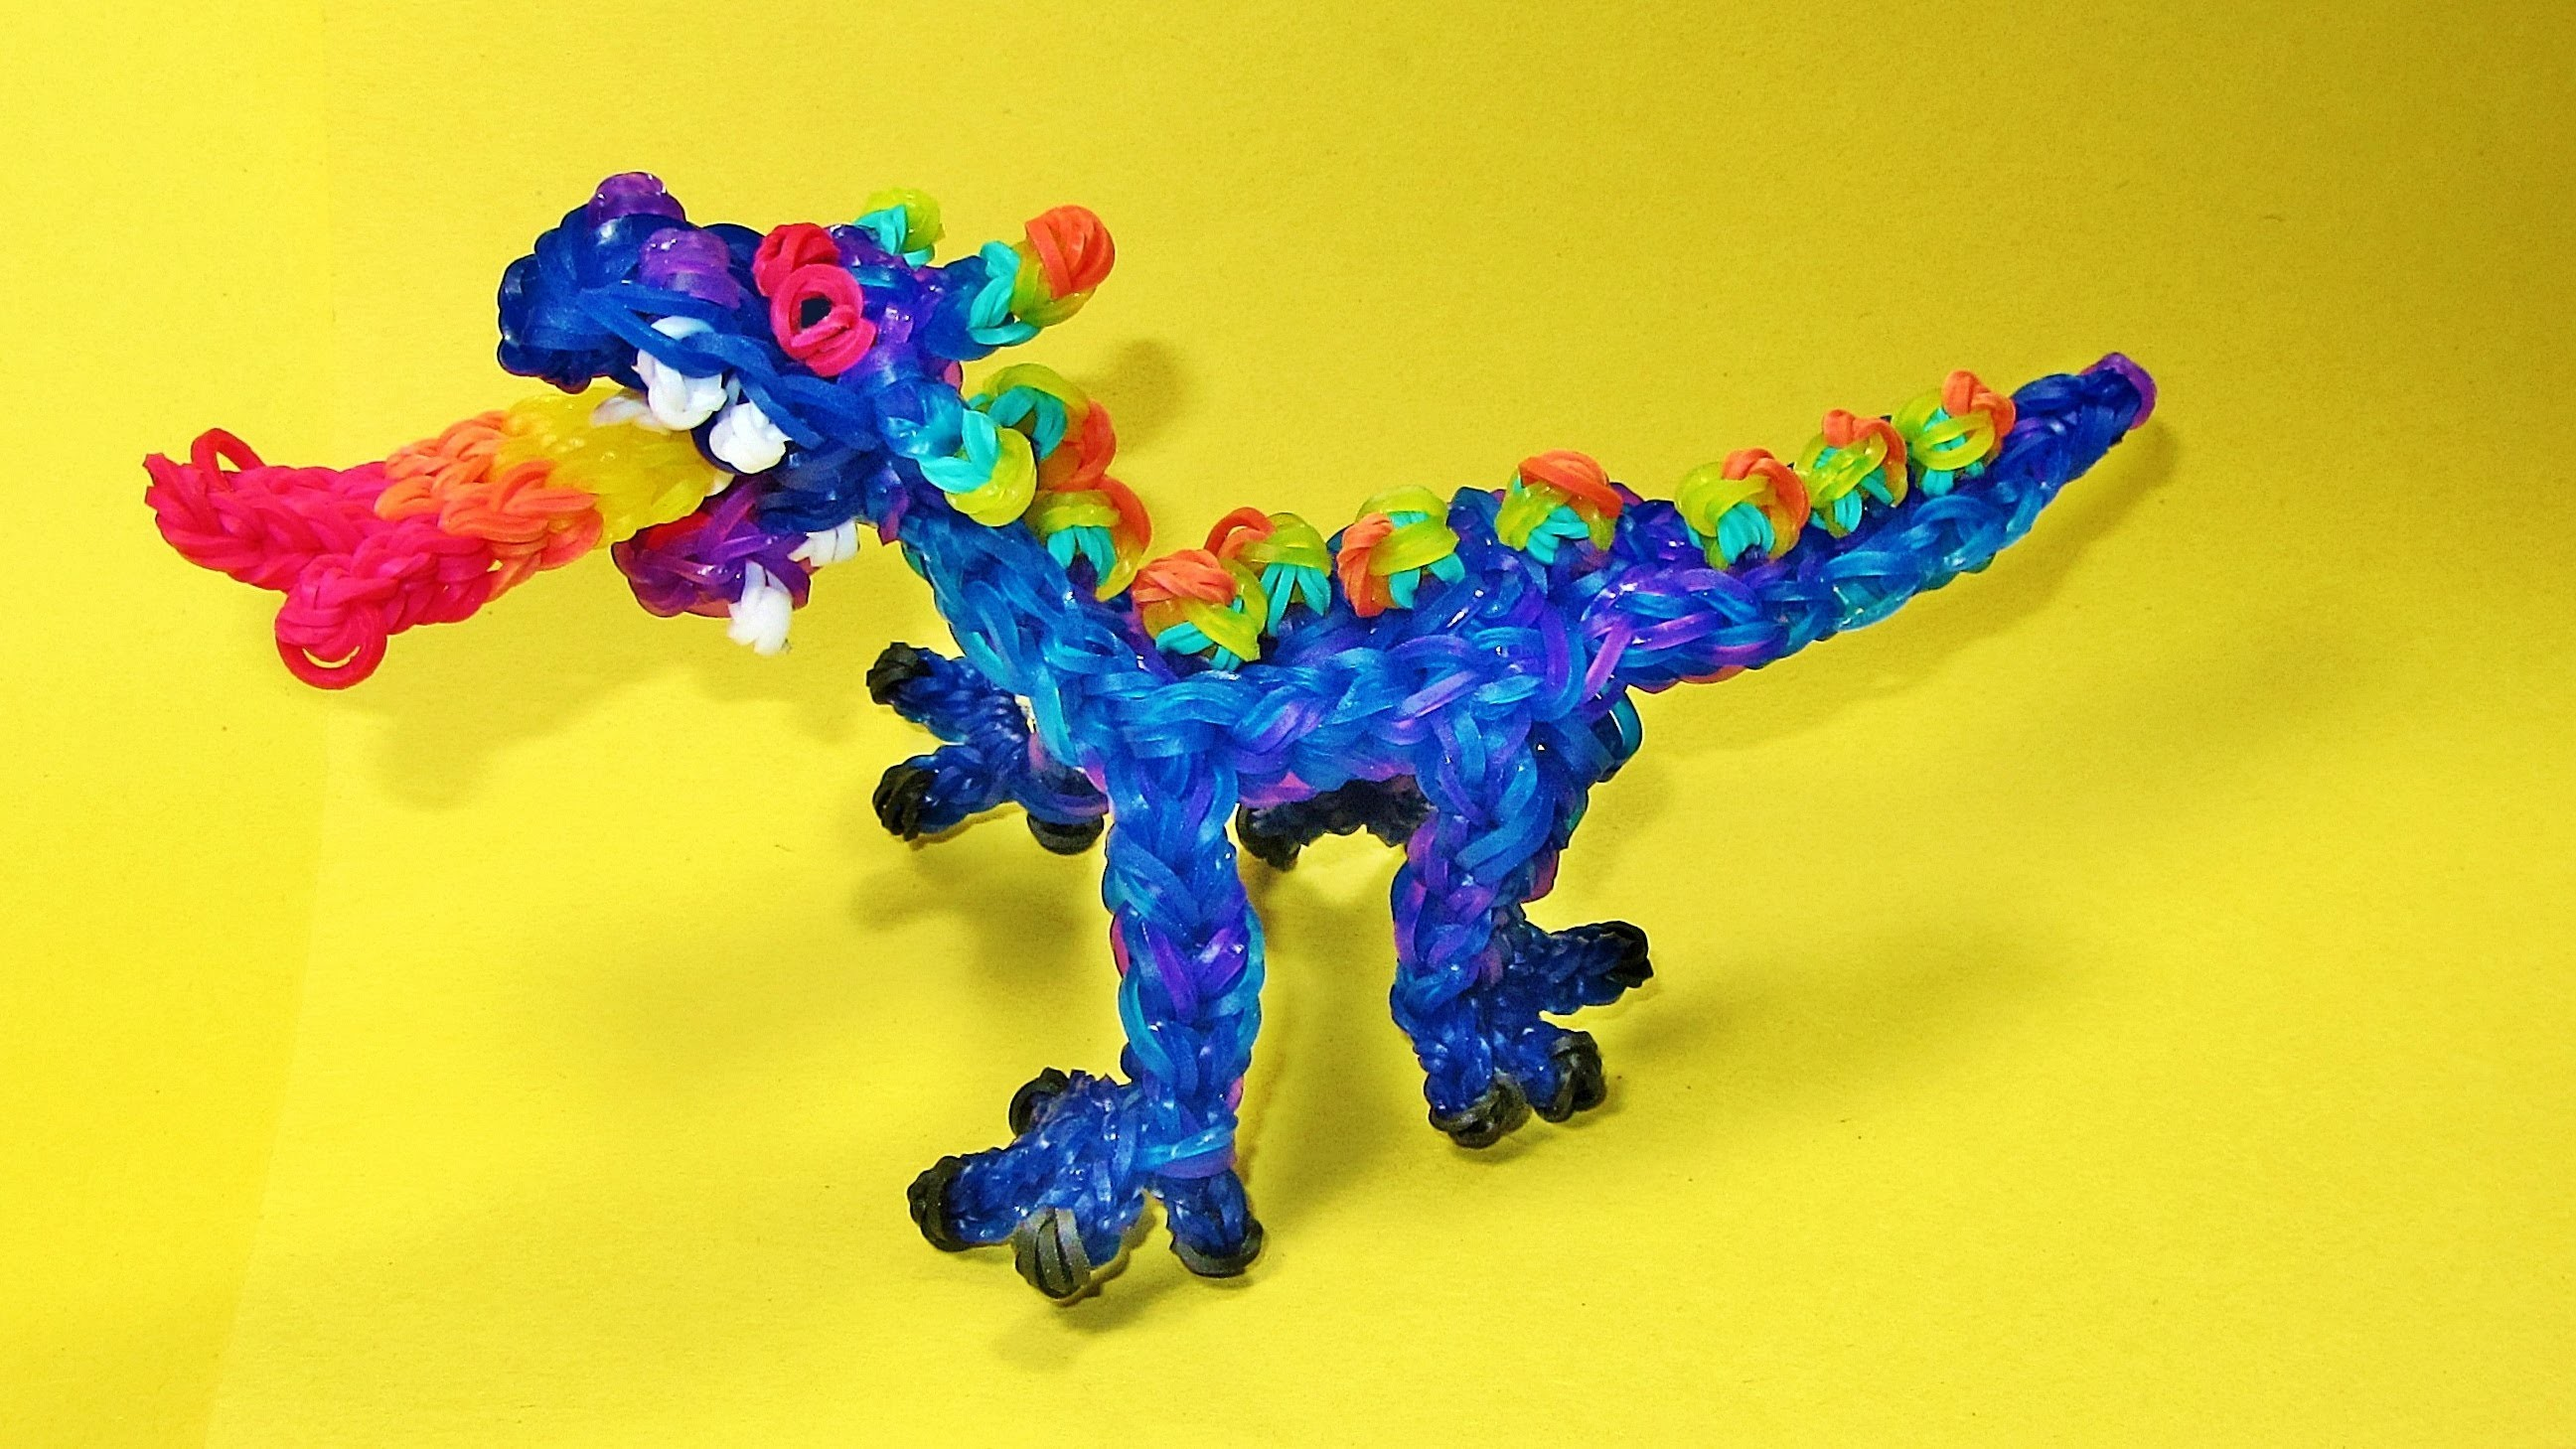 Rainbow Loom DRAGON Charm (Fire Breathing) - DIY Mommy